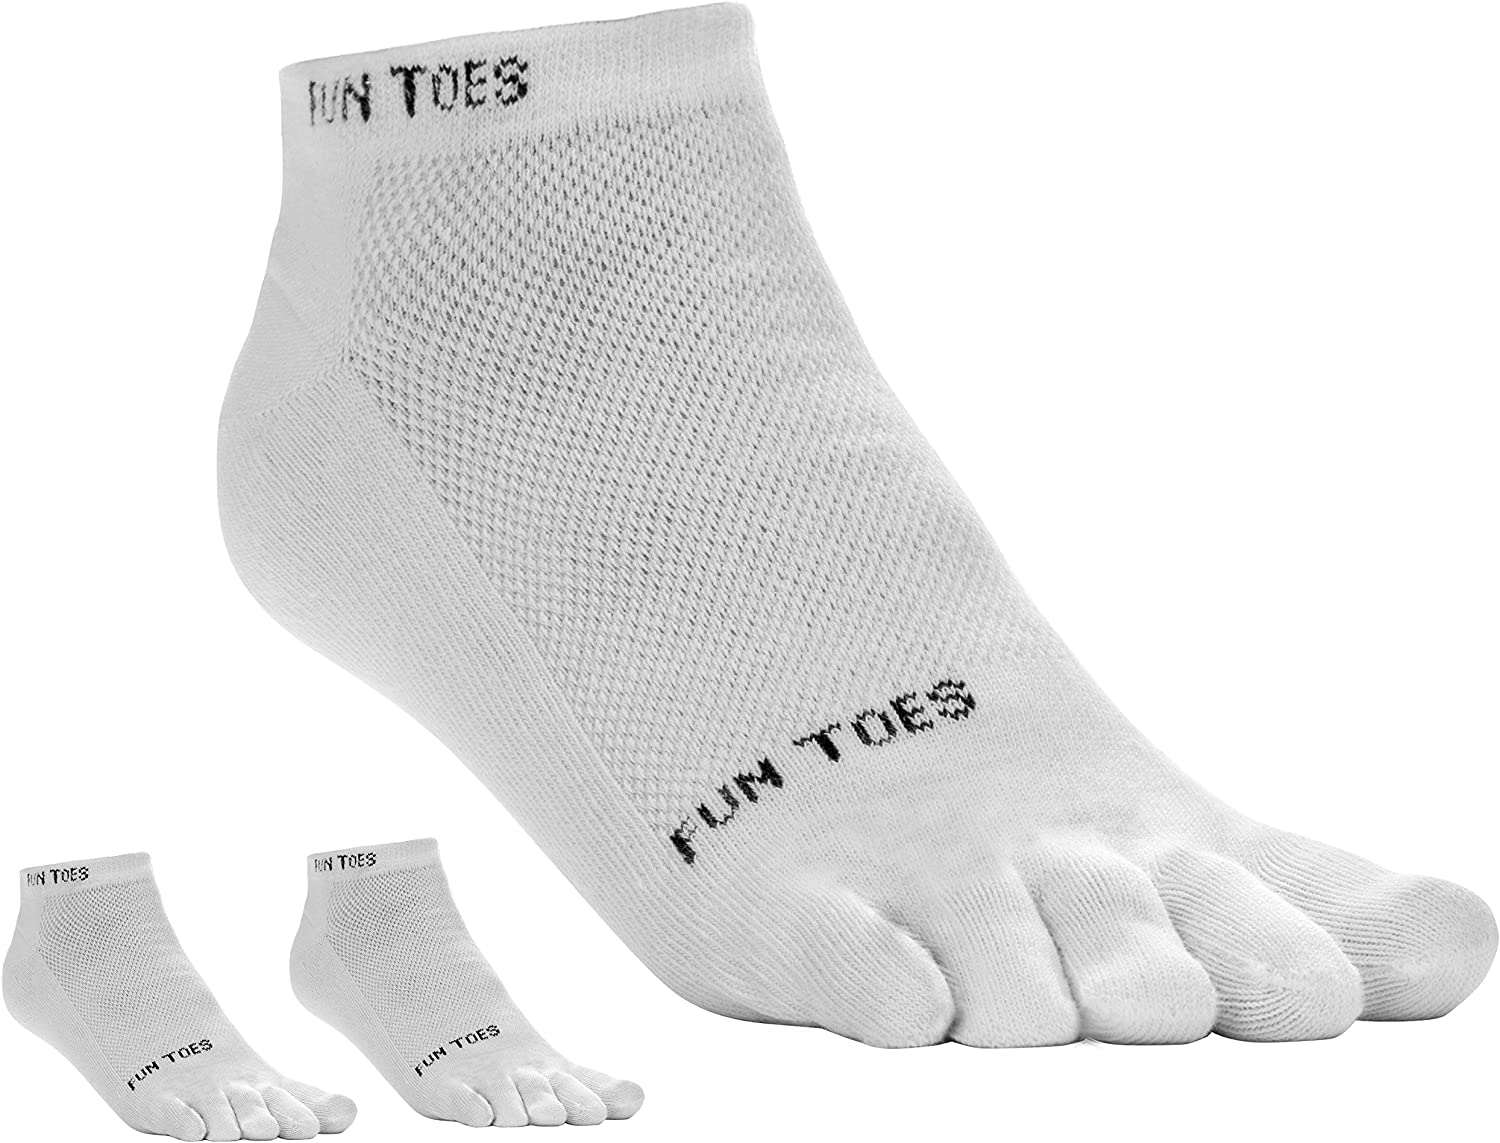 FUN TOES 3 Pairs Men's COTTON Toe Socks Breathable Mesh Top Size 10-13